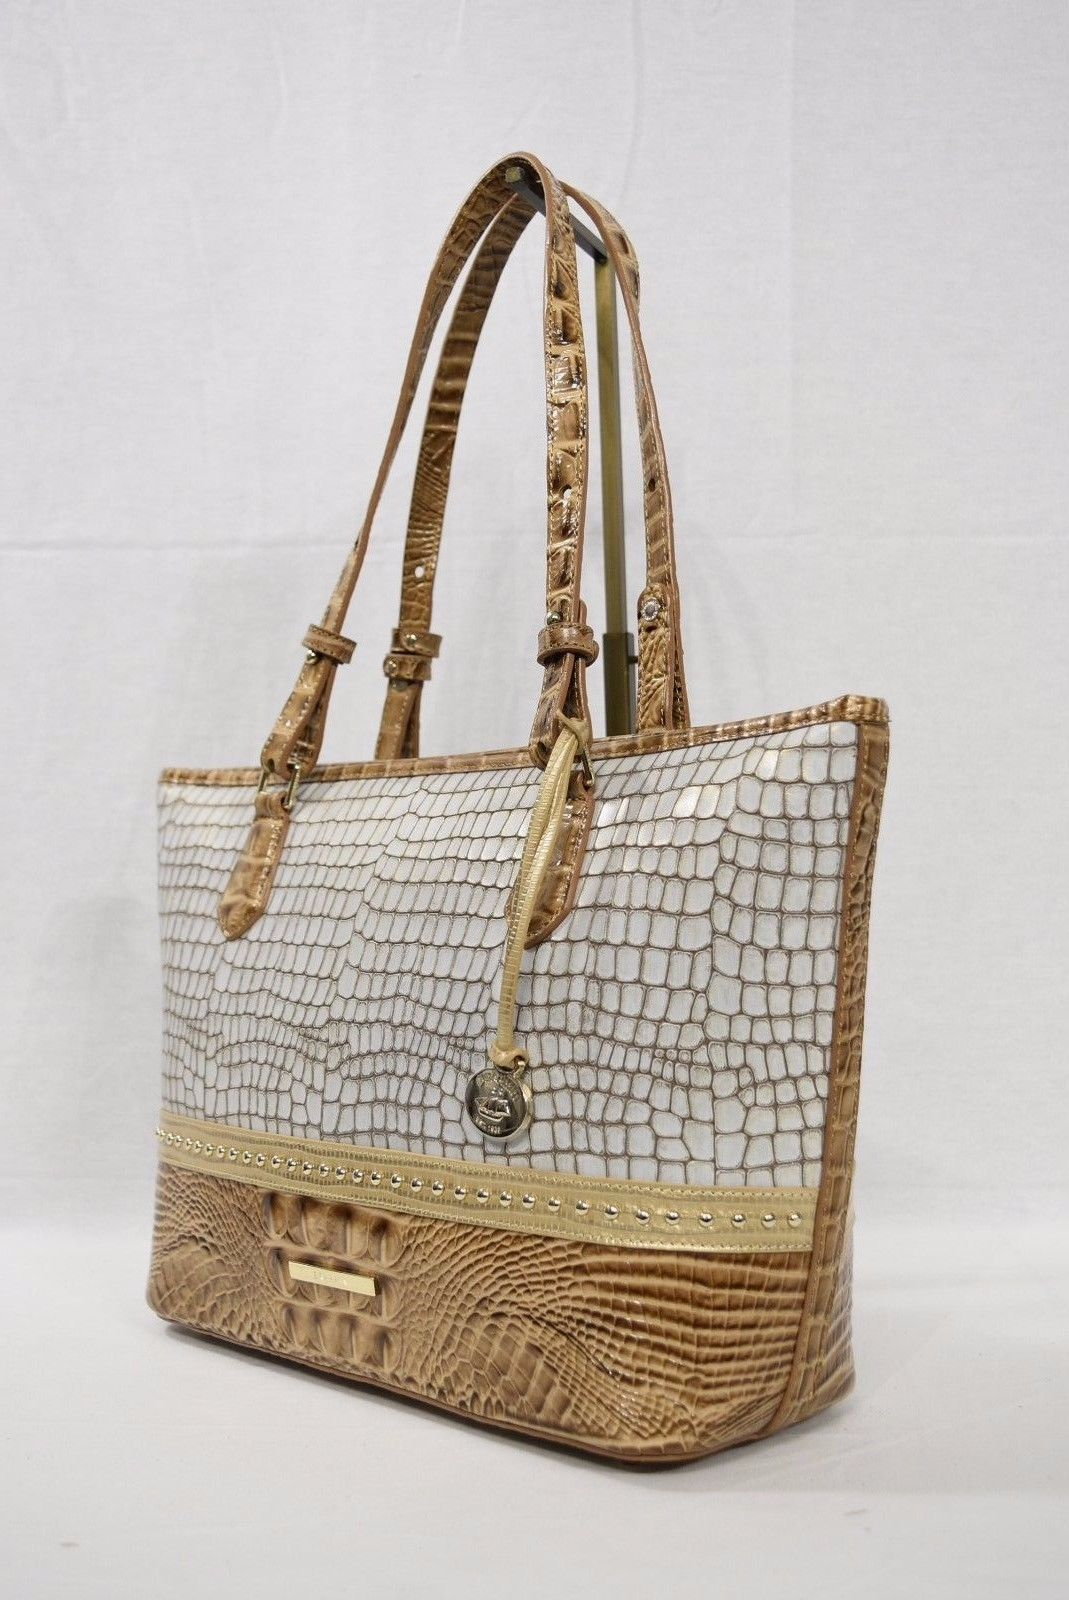 NWT Brahmin Medium Asher Tote/Shoulder Bag in Beige La Vega Tri-Texture - $289.00